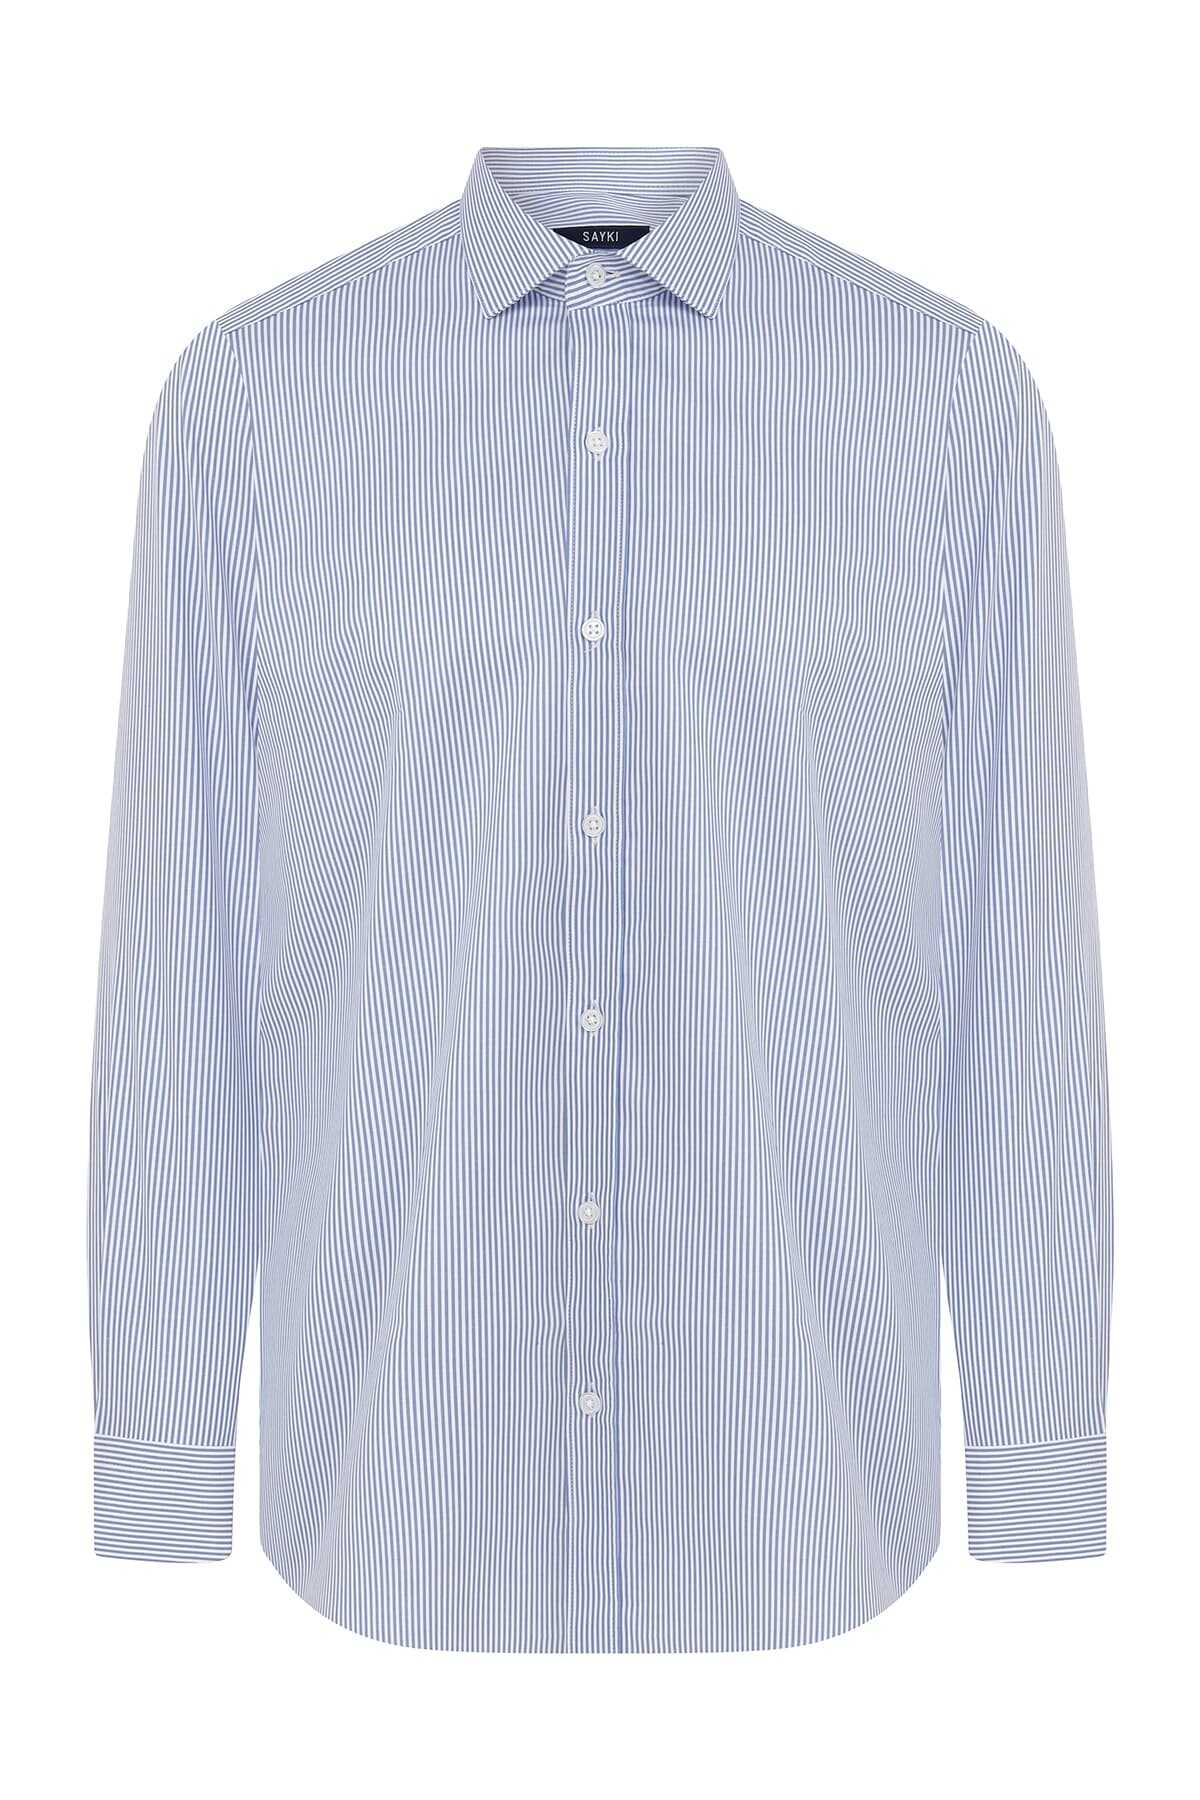 Hatem Saykı - Slim Fit Striped Blue Shirt